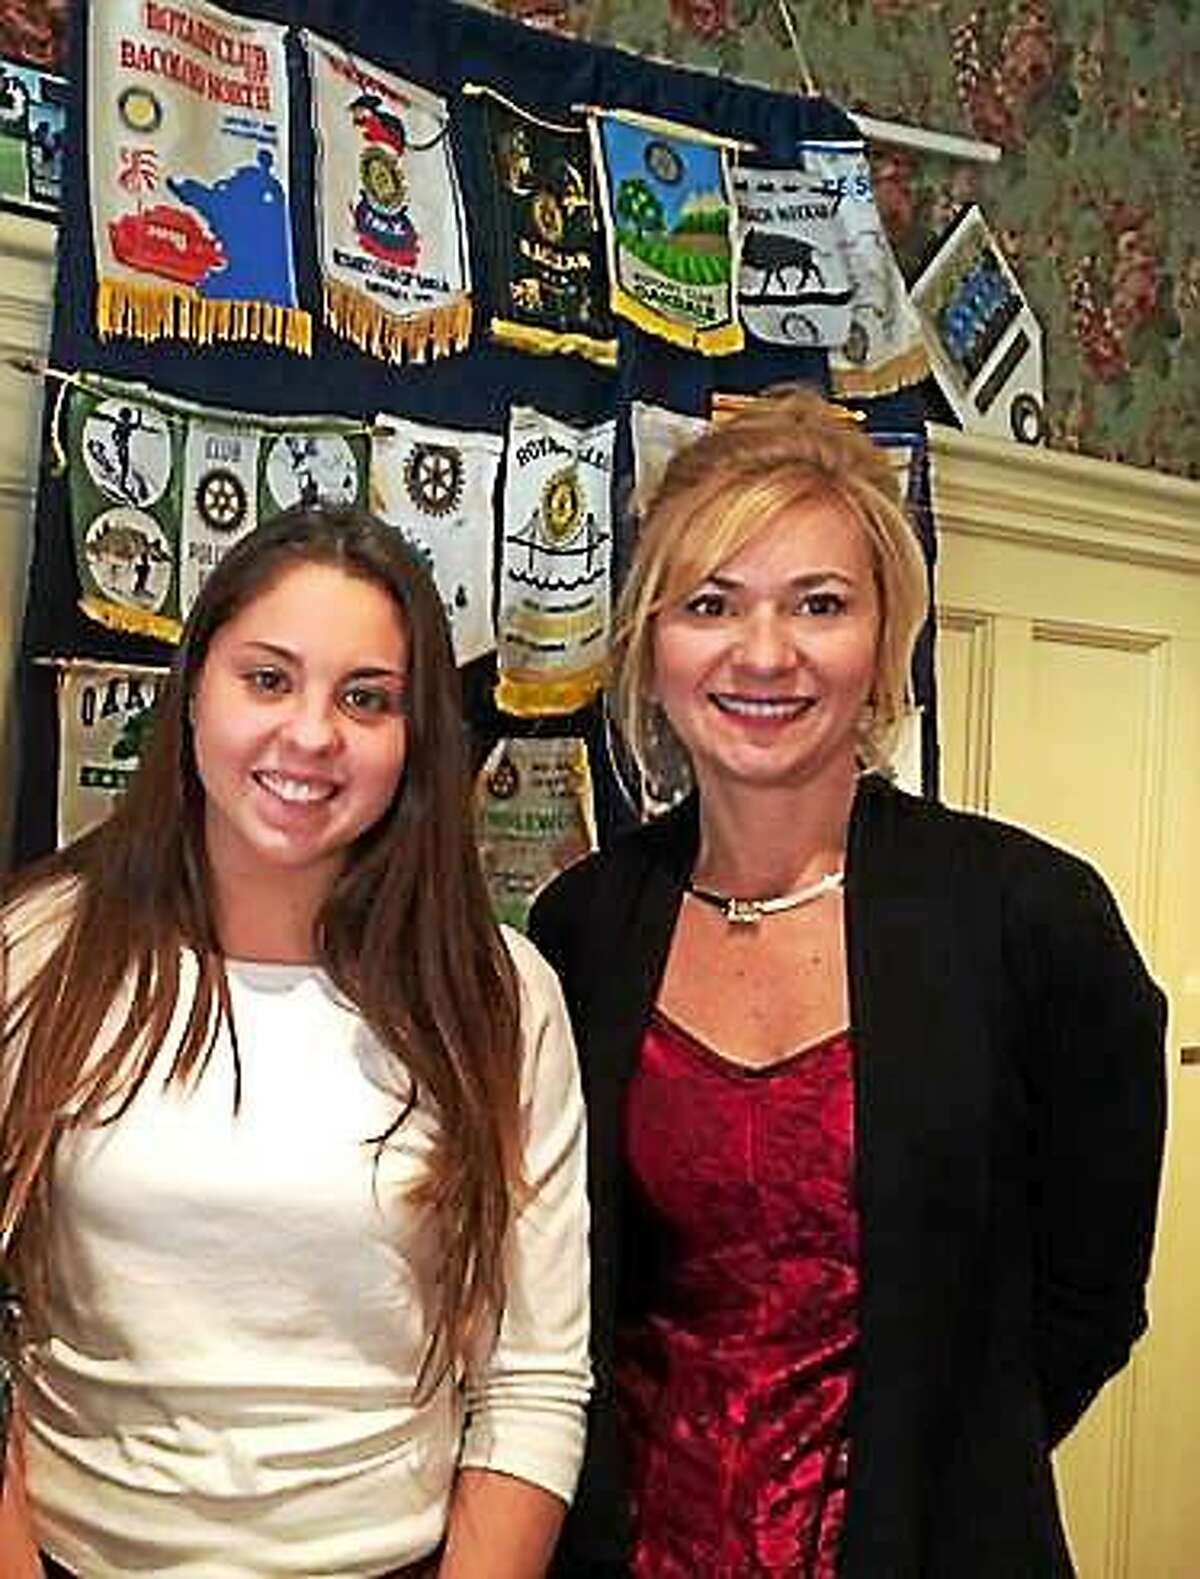 Portland High School student Brooke Marconi has been honored at the Middletown Rotary Club's student of the month.